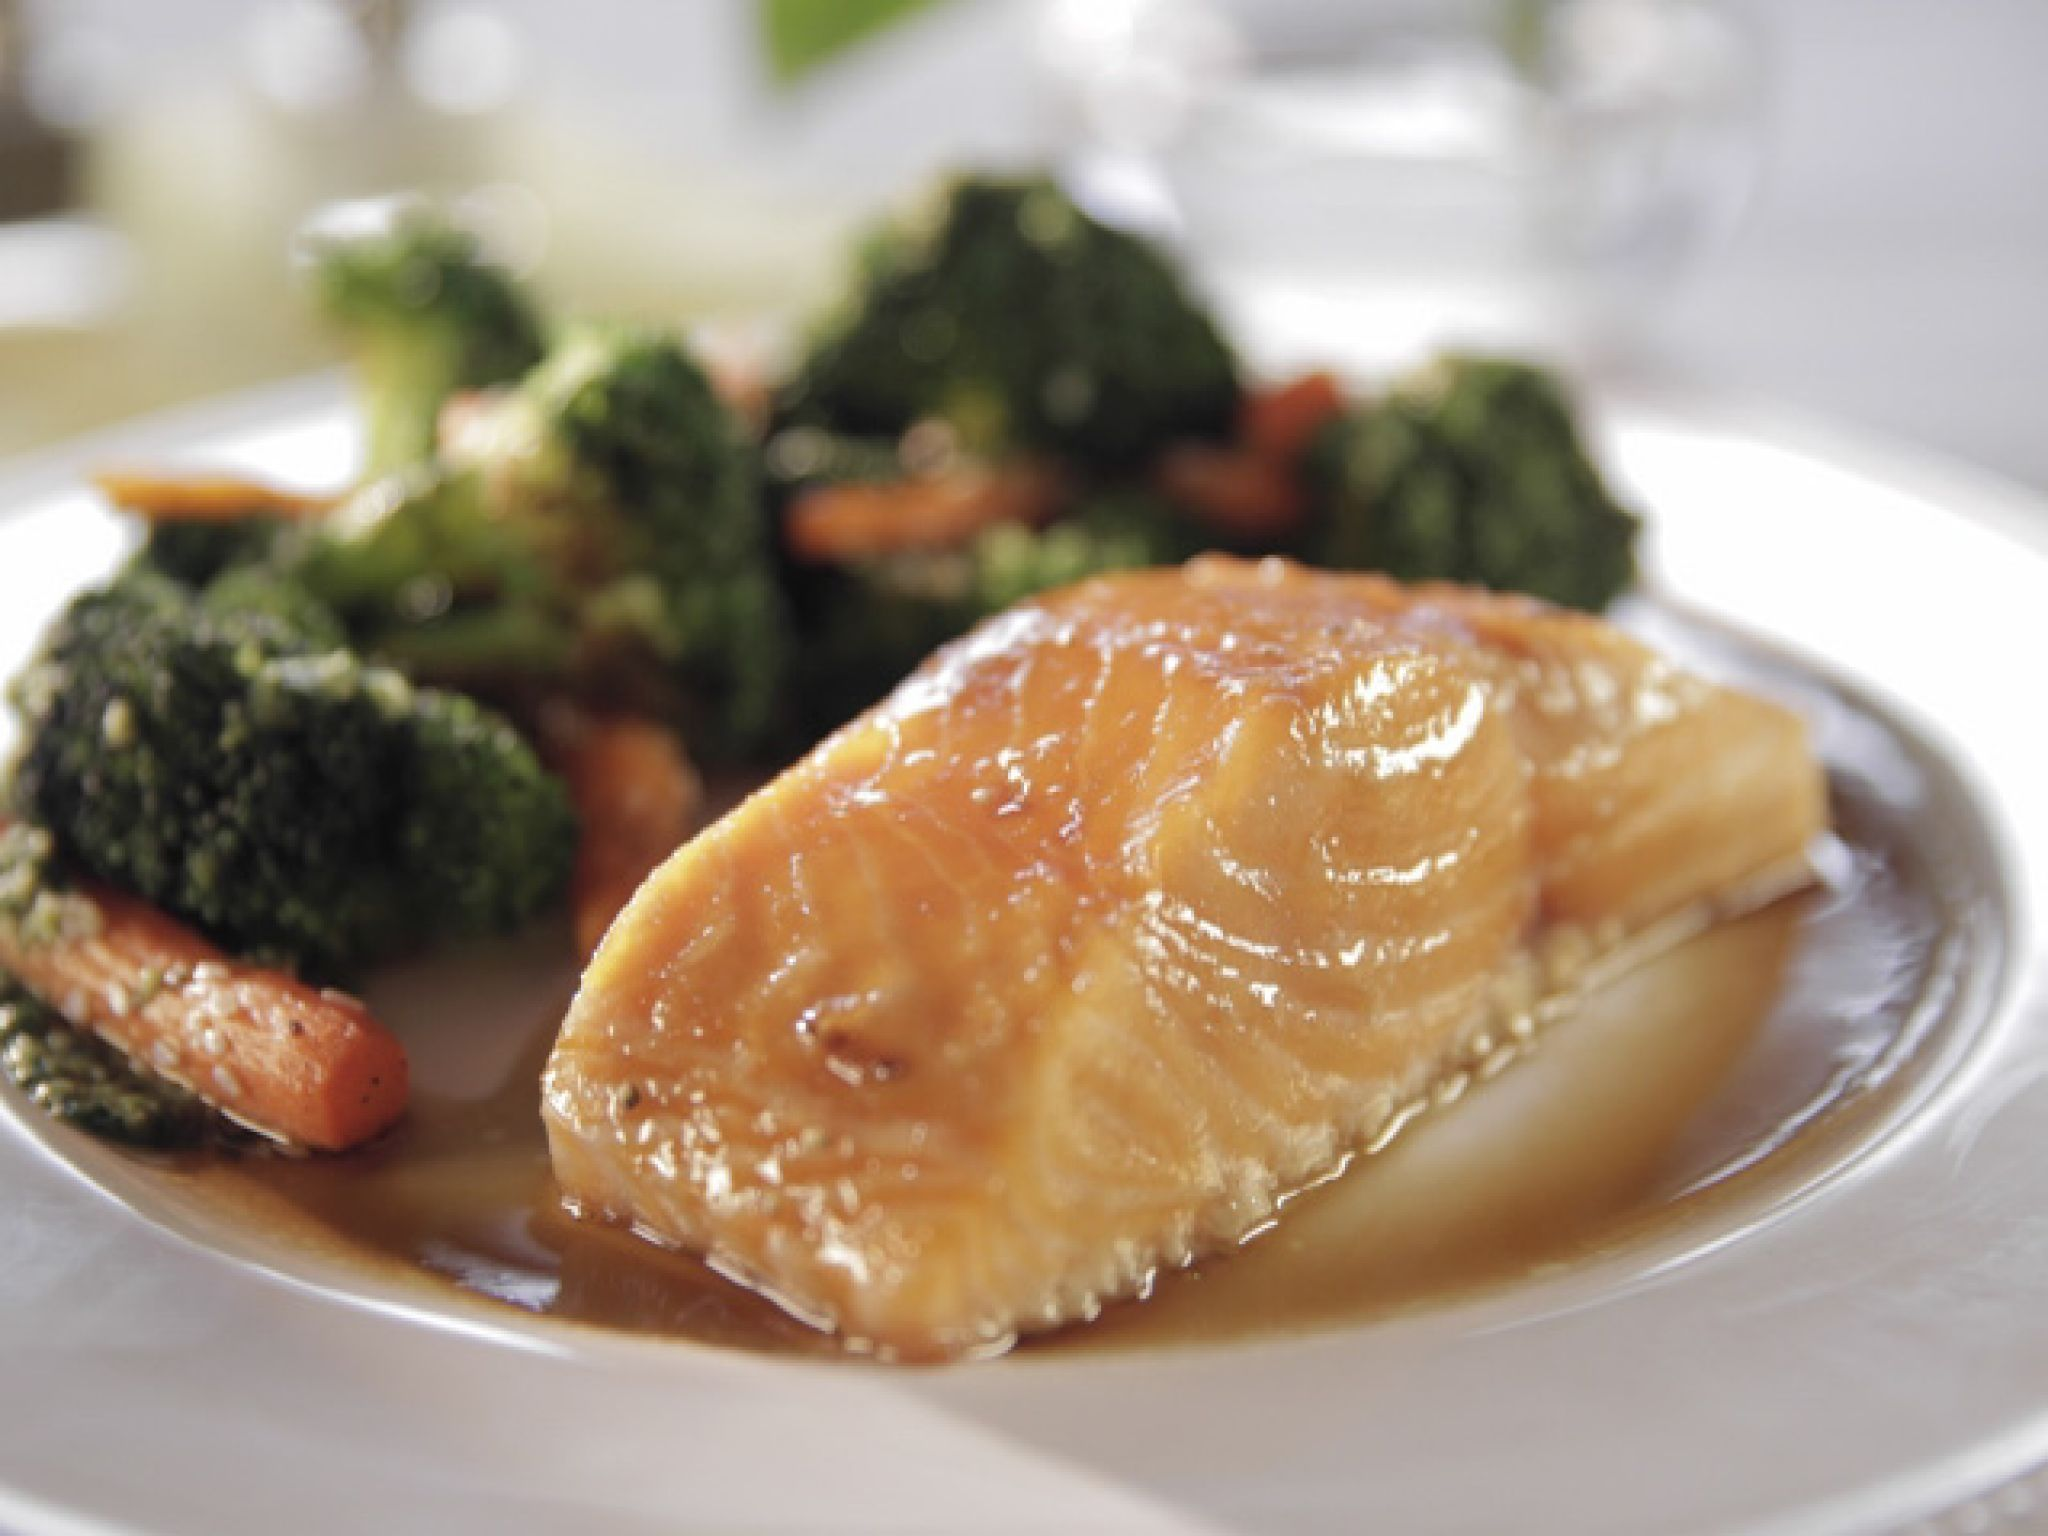 Trisha yearwoods special mothers day meal maple glazed salmon maple glazed salmon brown sugar maple syrup olive oil and teriyaki sauce give baked salmon a salty sweet flavor without too much work this recipe takes forumfinder Gallery